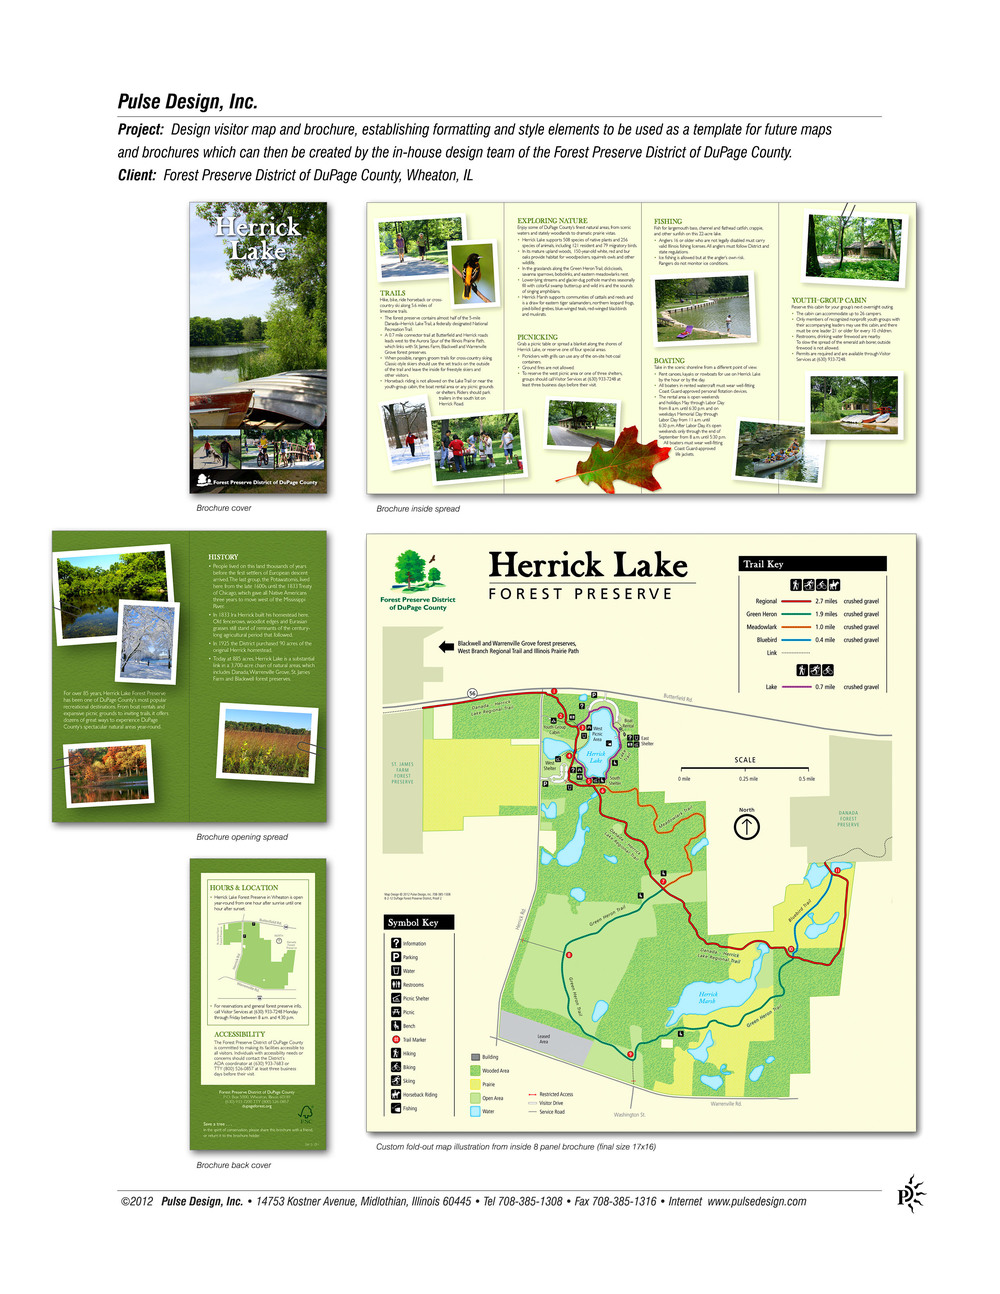 Dupage-Forest-Preserve-Herrick-Lake-Map-Brochure-Sm-Pulse-Design-Inc.jpg